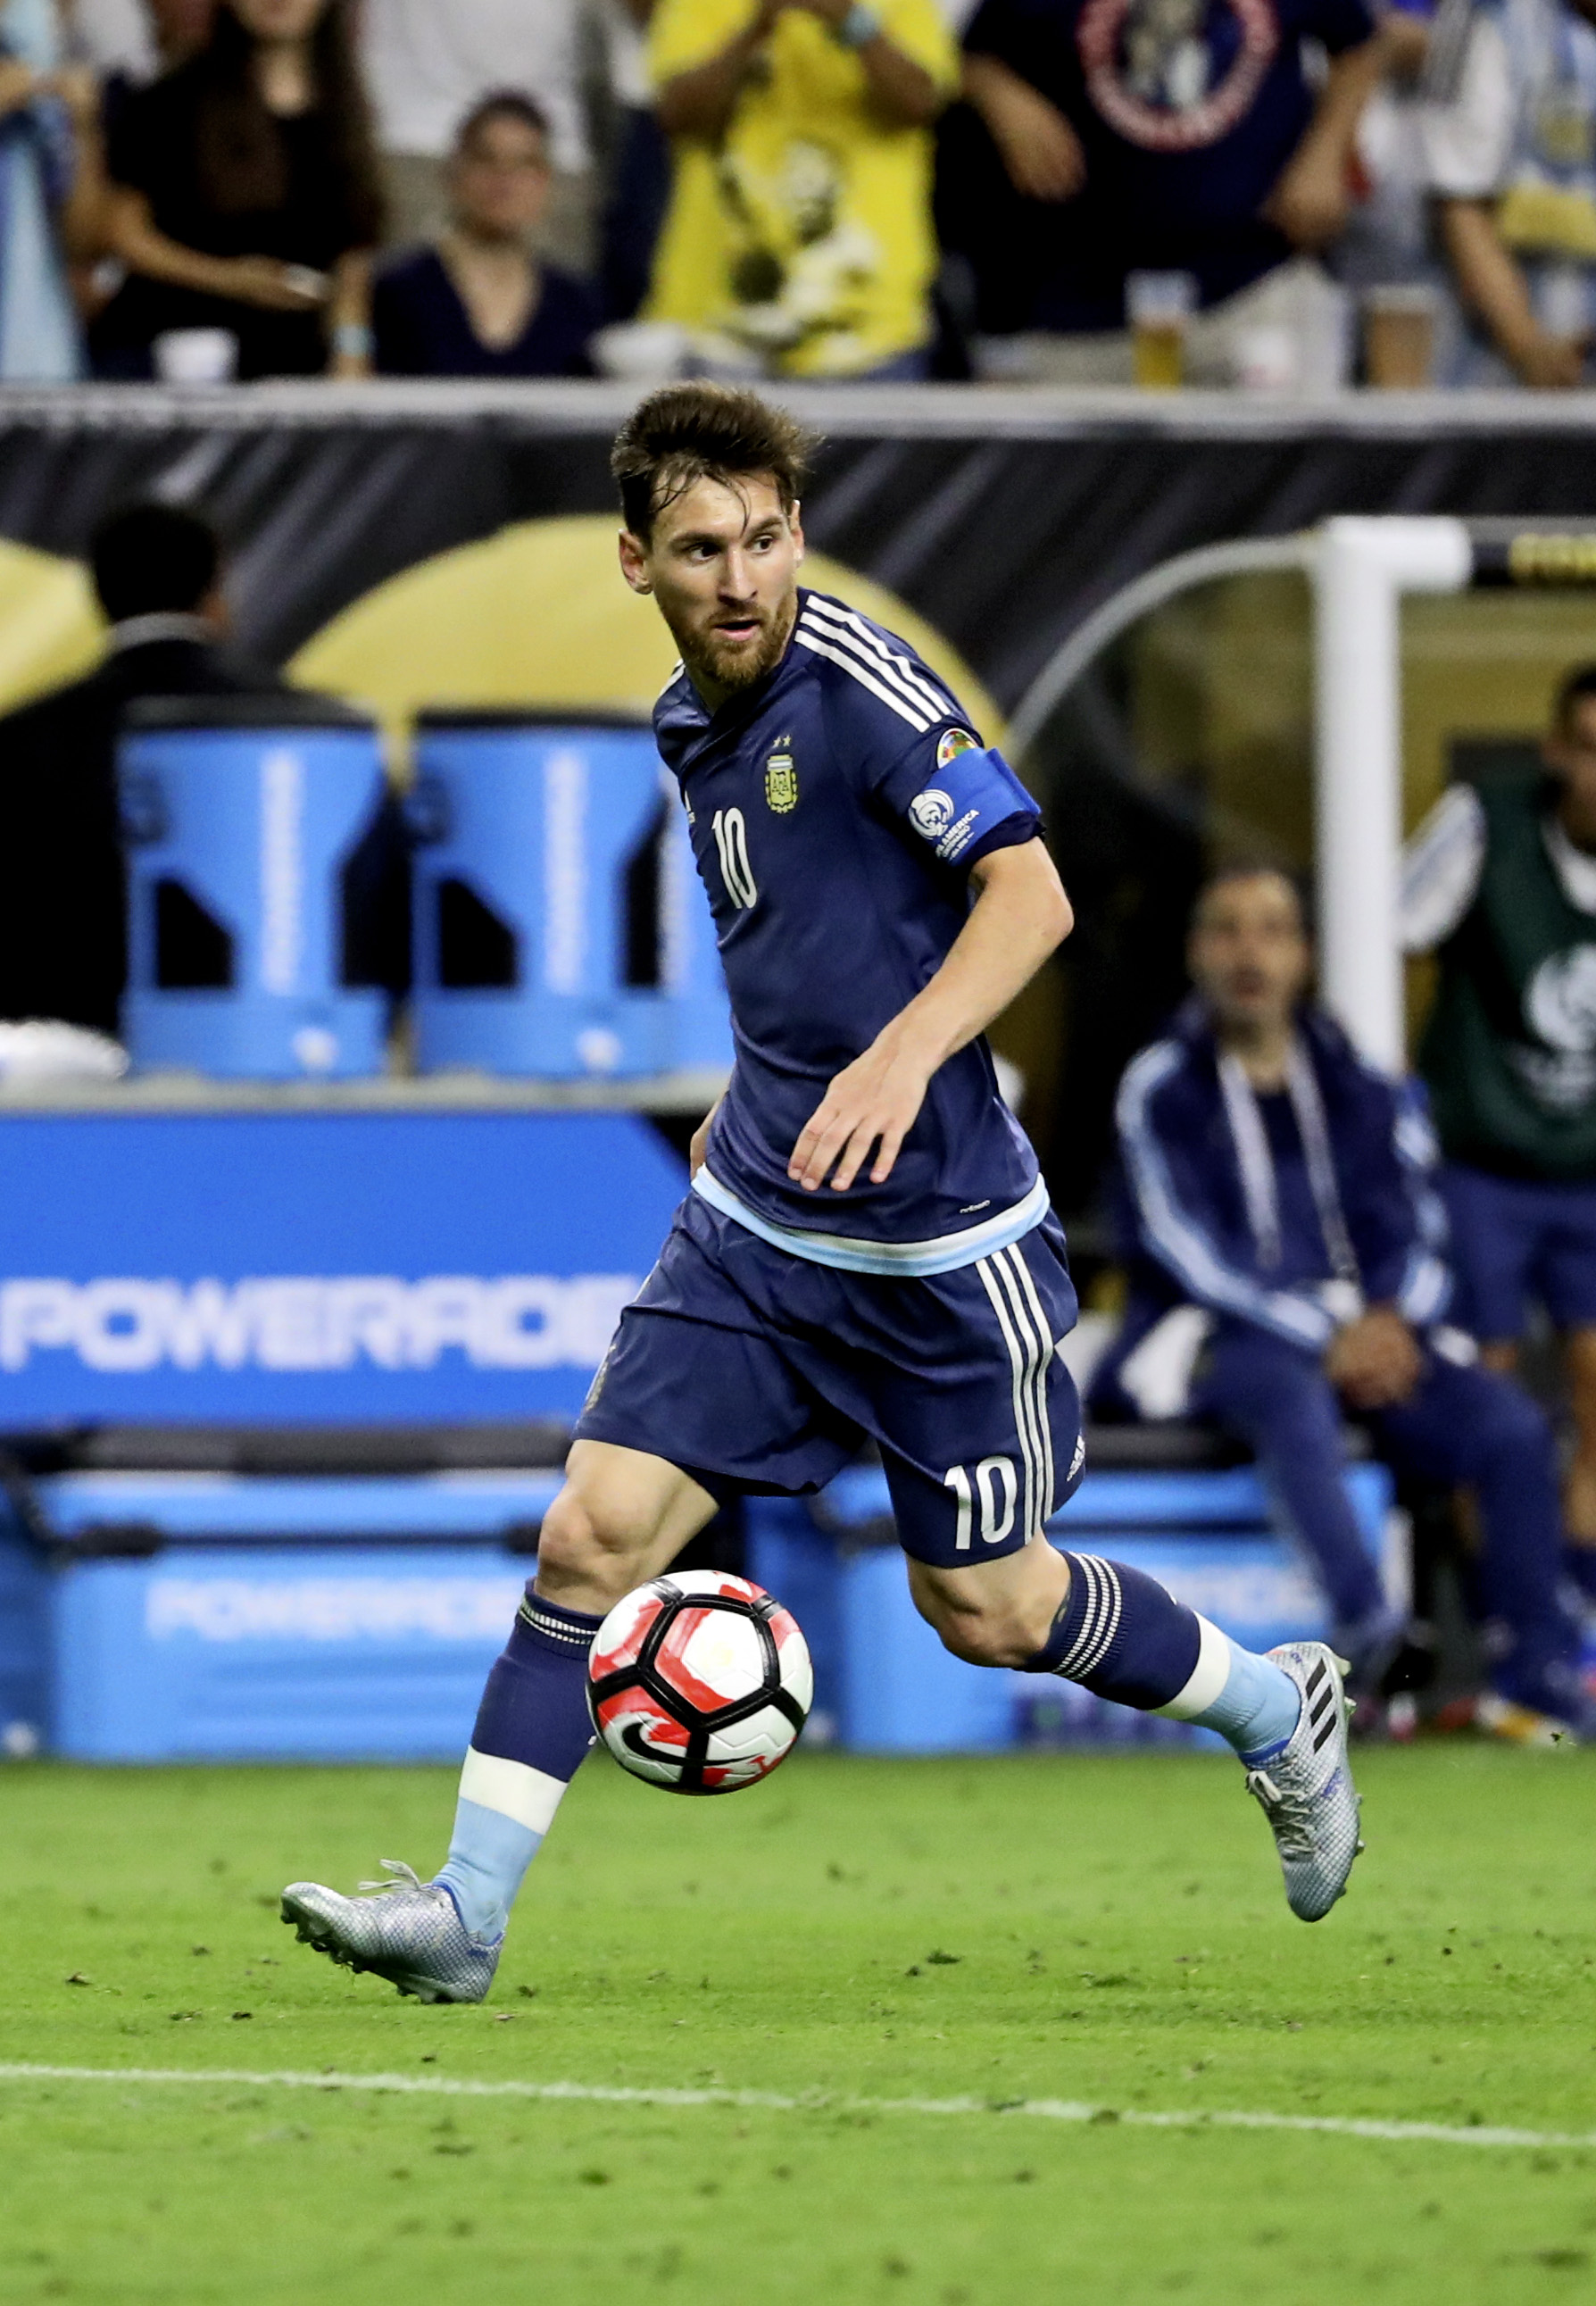 Lionel Messi could not have possibly been contained in the Copa America semifinal